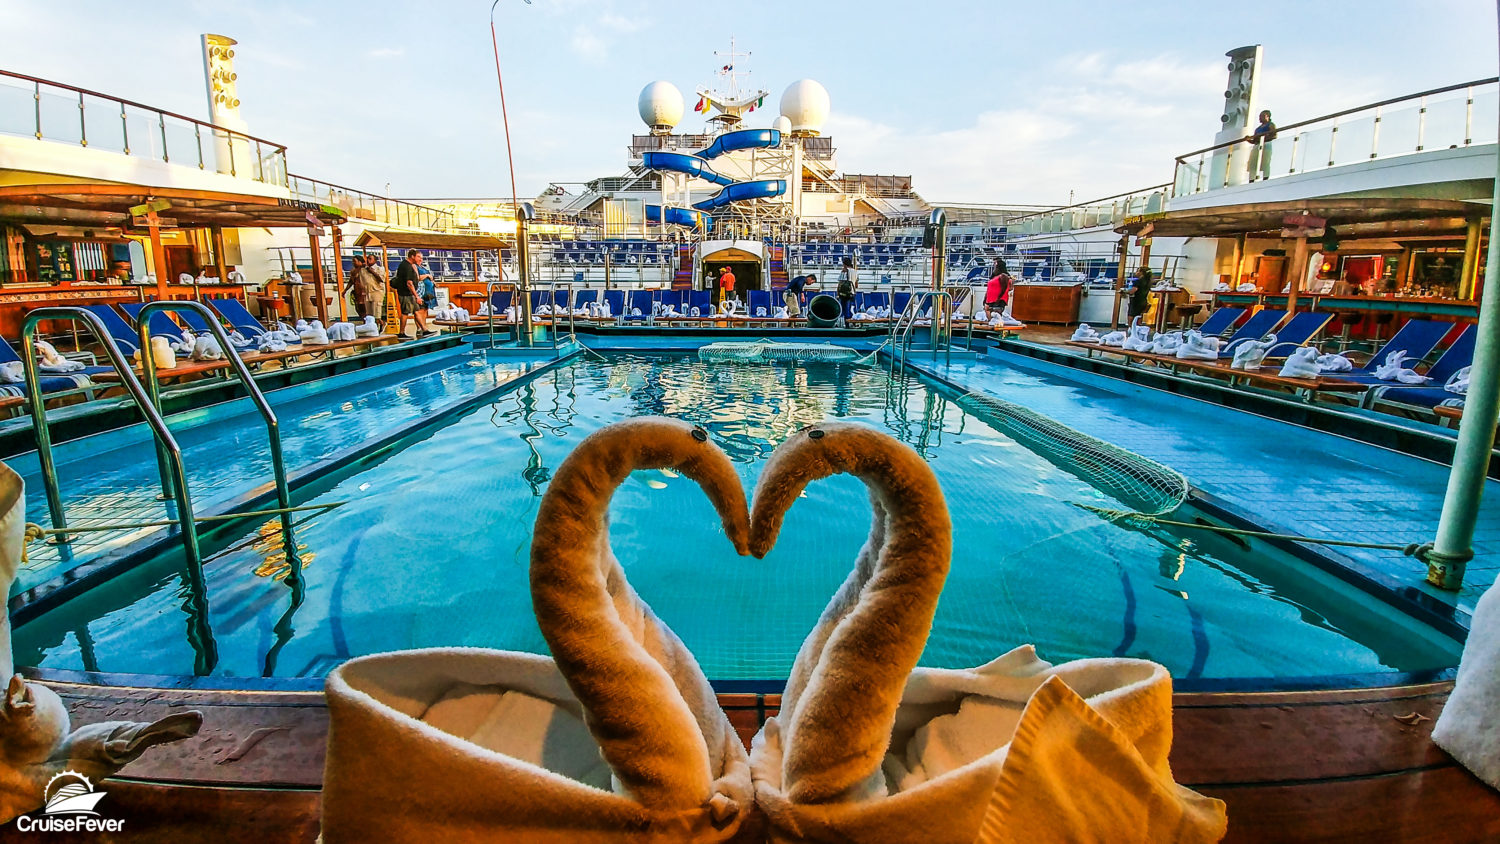 Carnival Victory Pool Cruise Fever